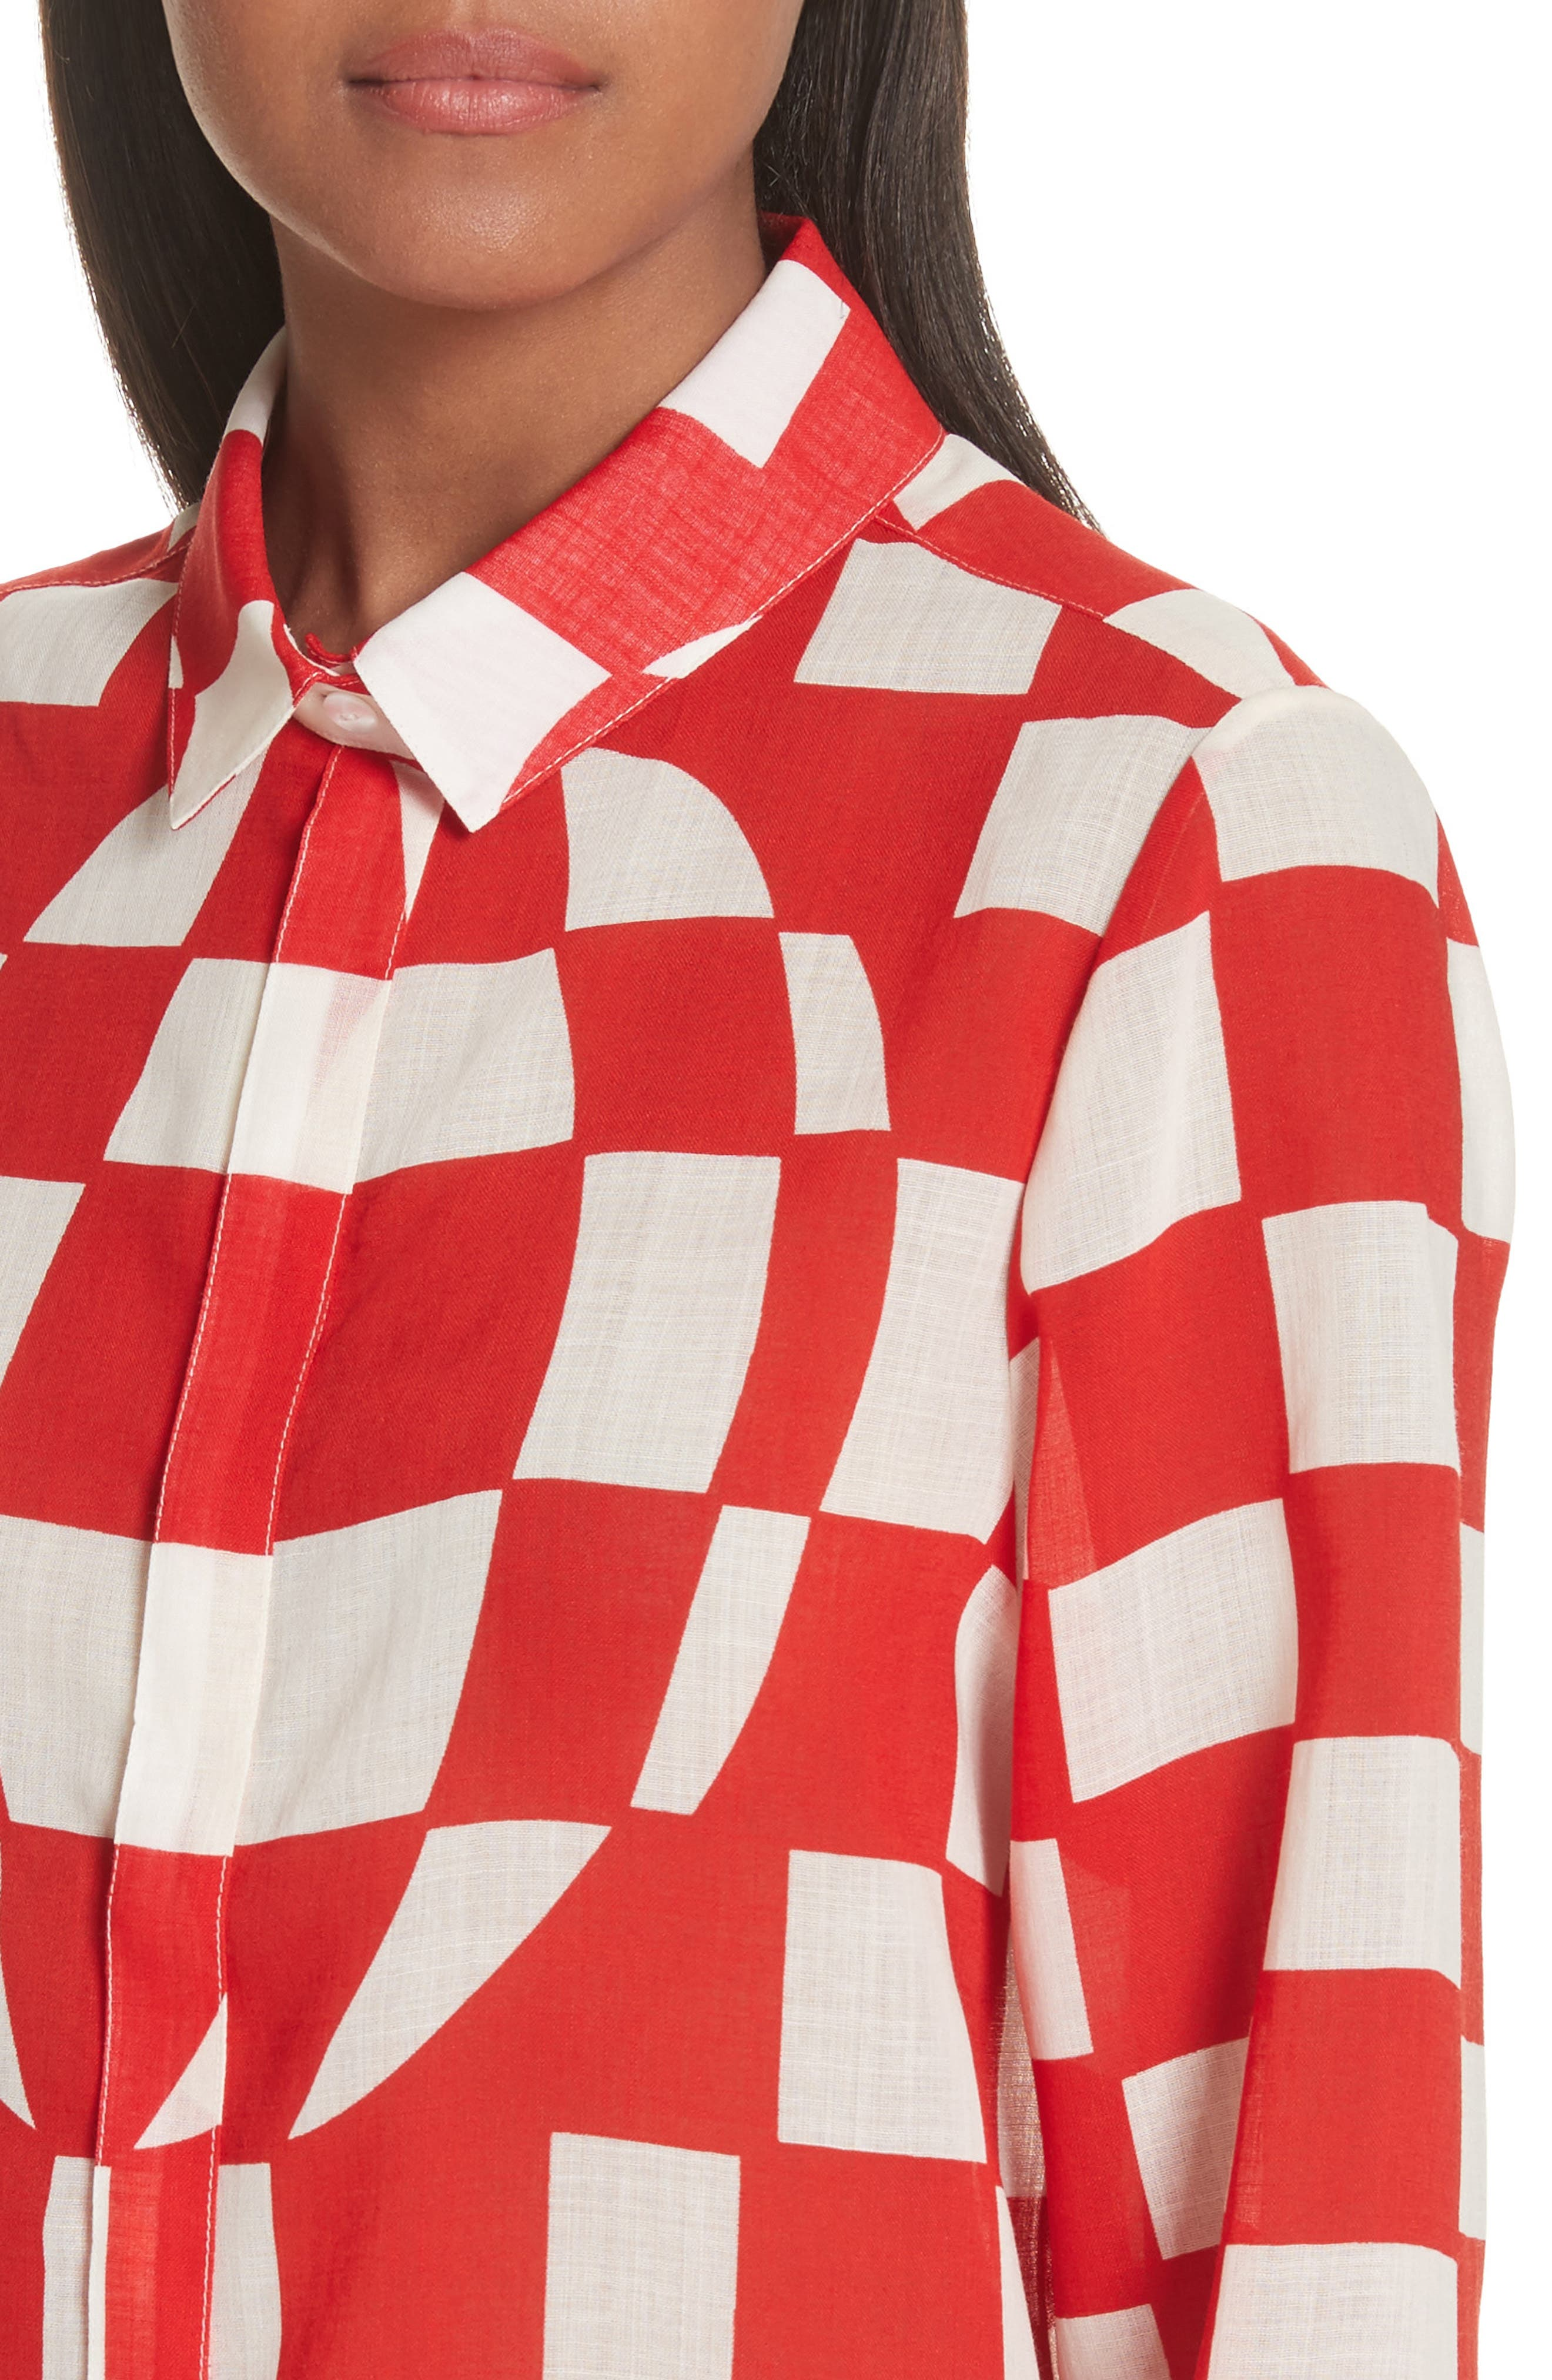 Checkerboard Print Blouse,                             Alternate thumbnail 4, color,                             Pillar Box Red